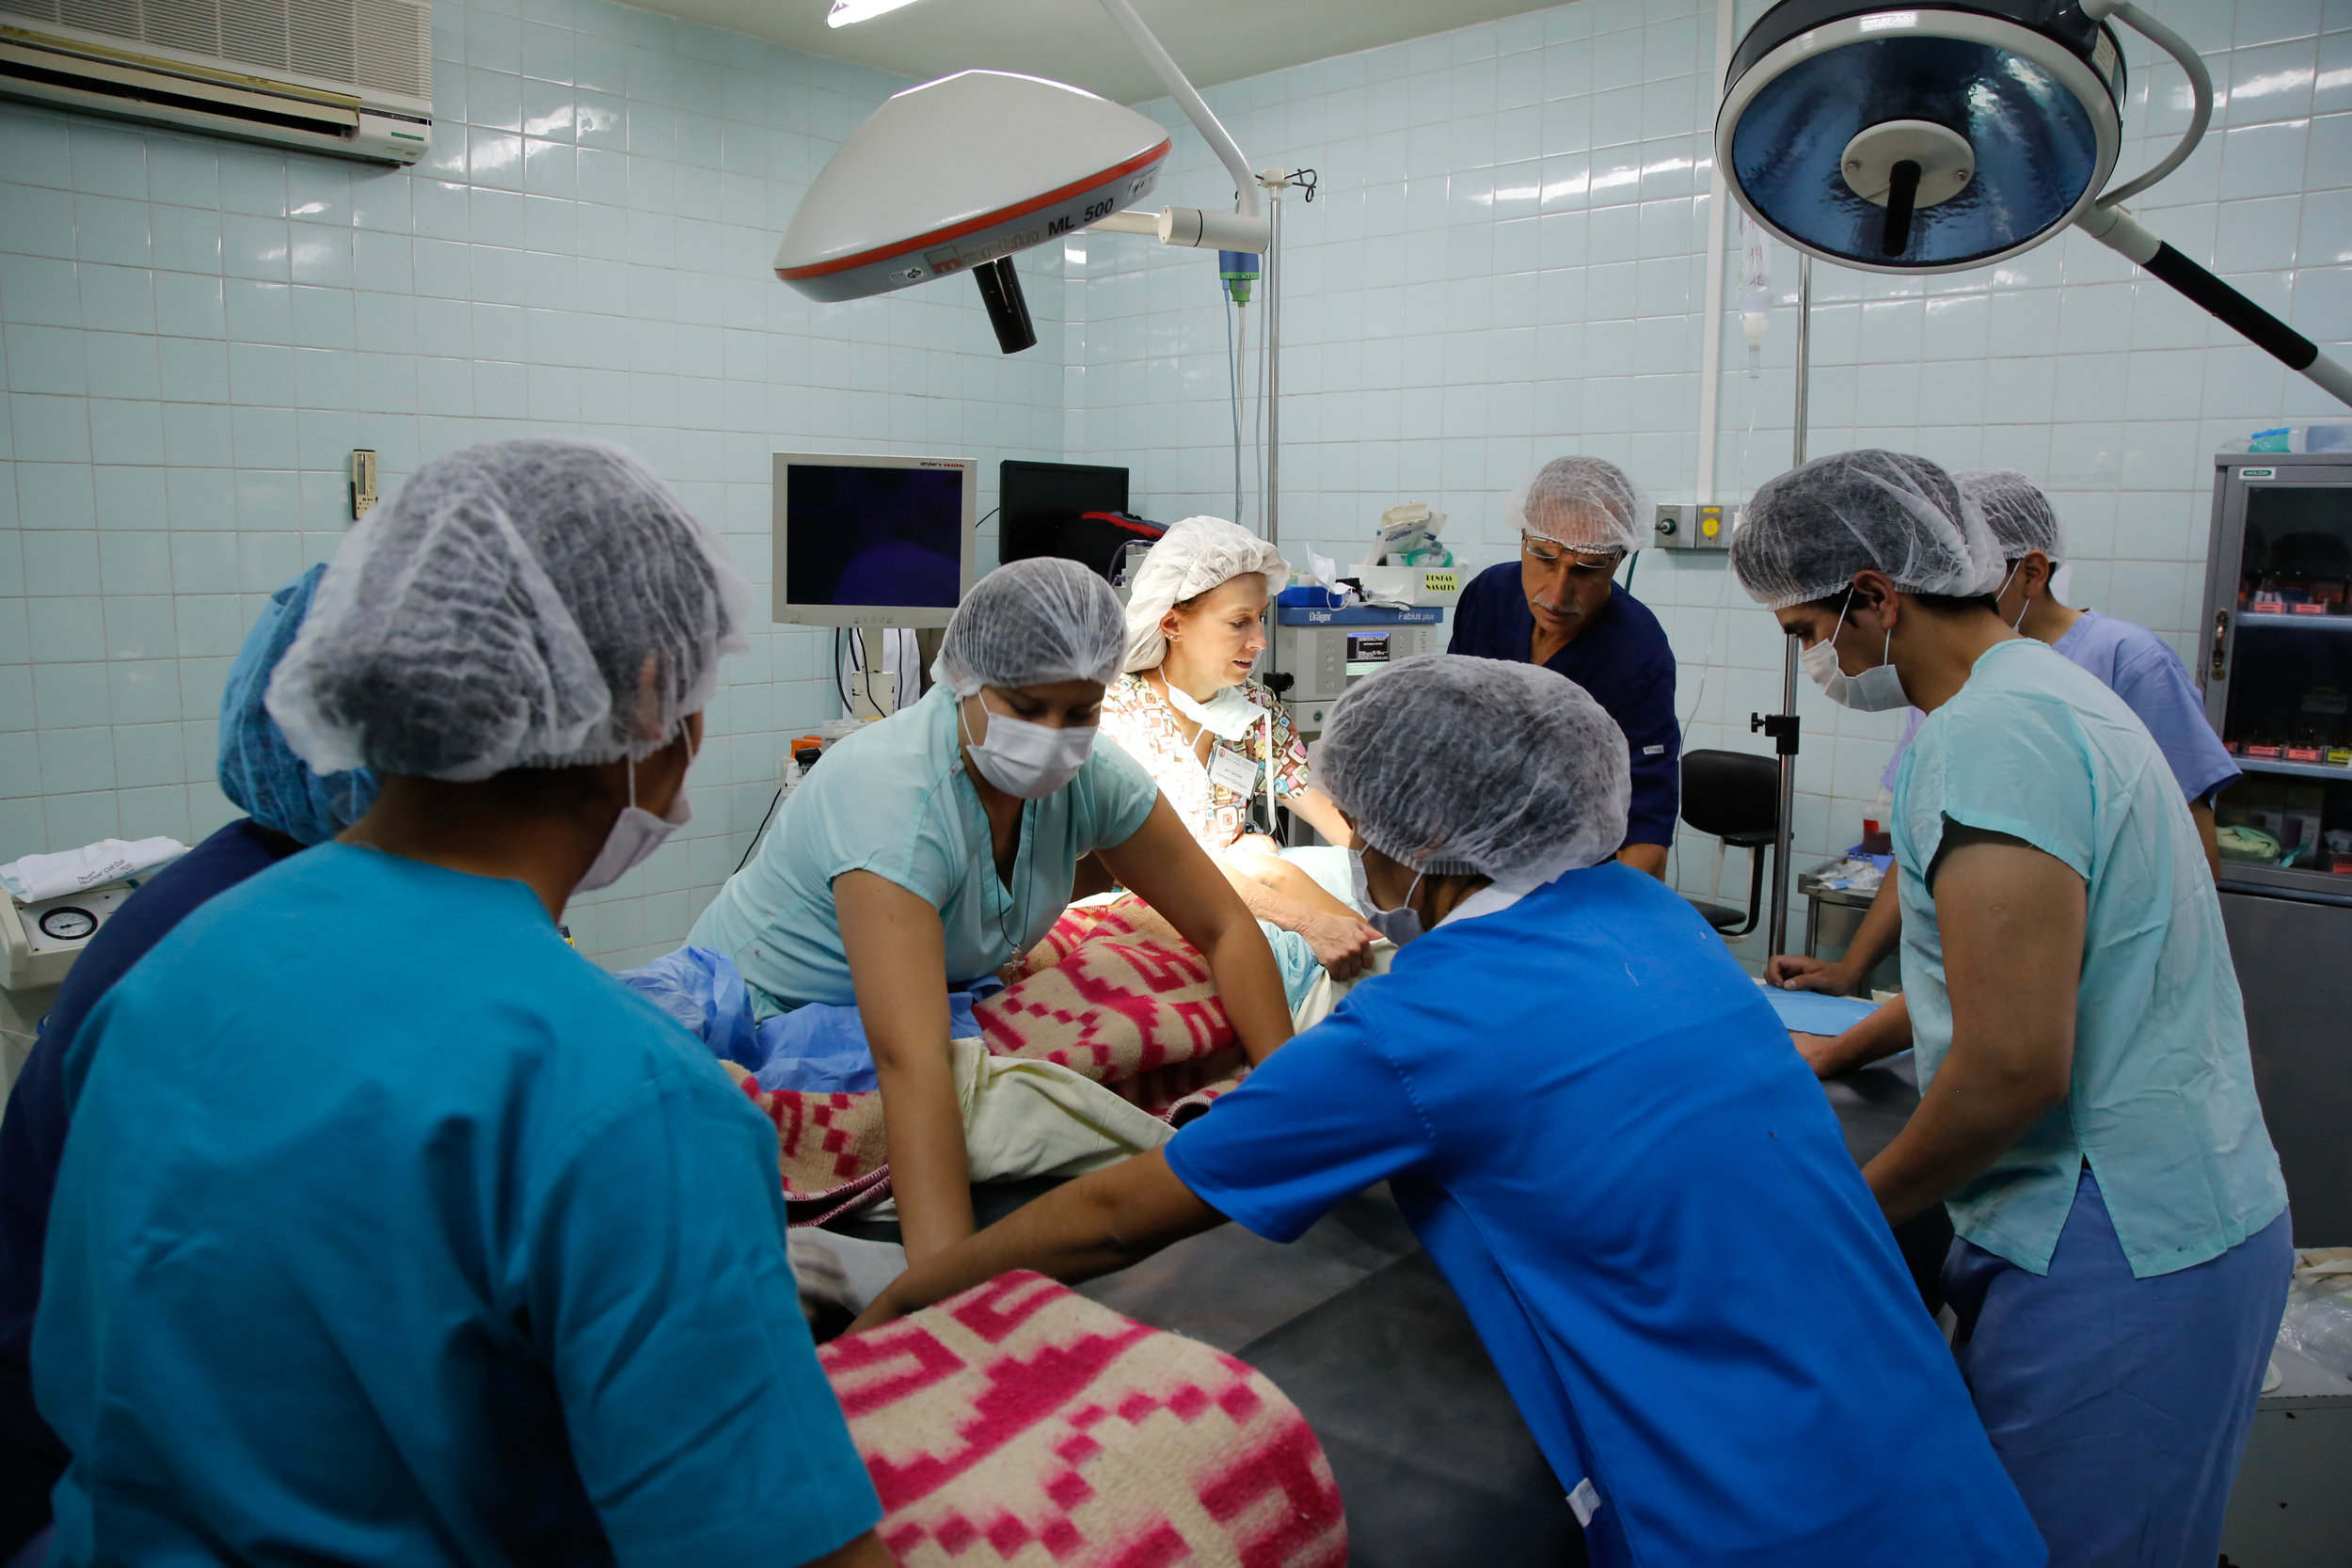 In the OR on mission